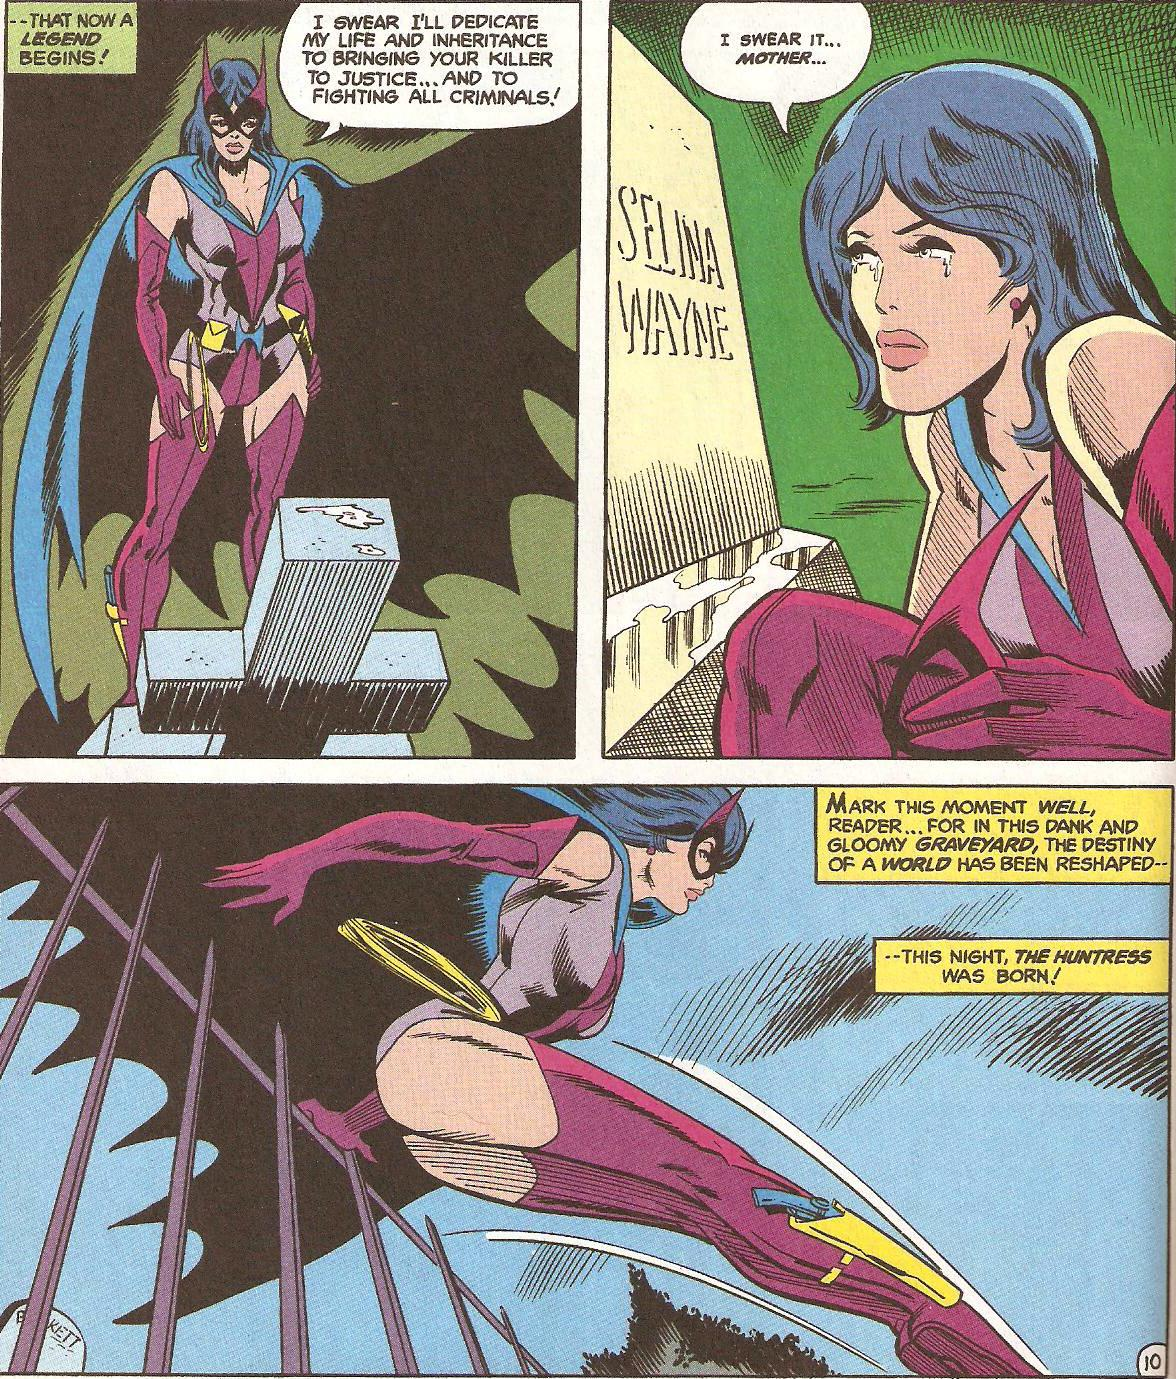 The original appearance of the Huntress, from DC Super Stars #17 (1977)